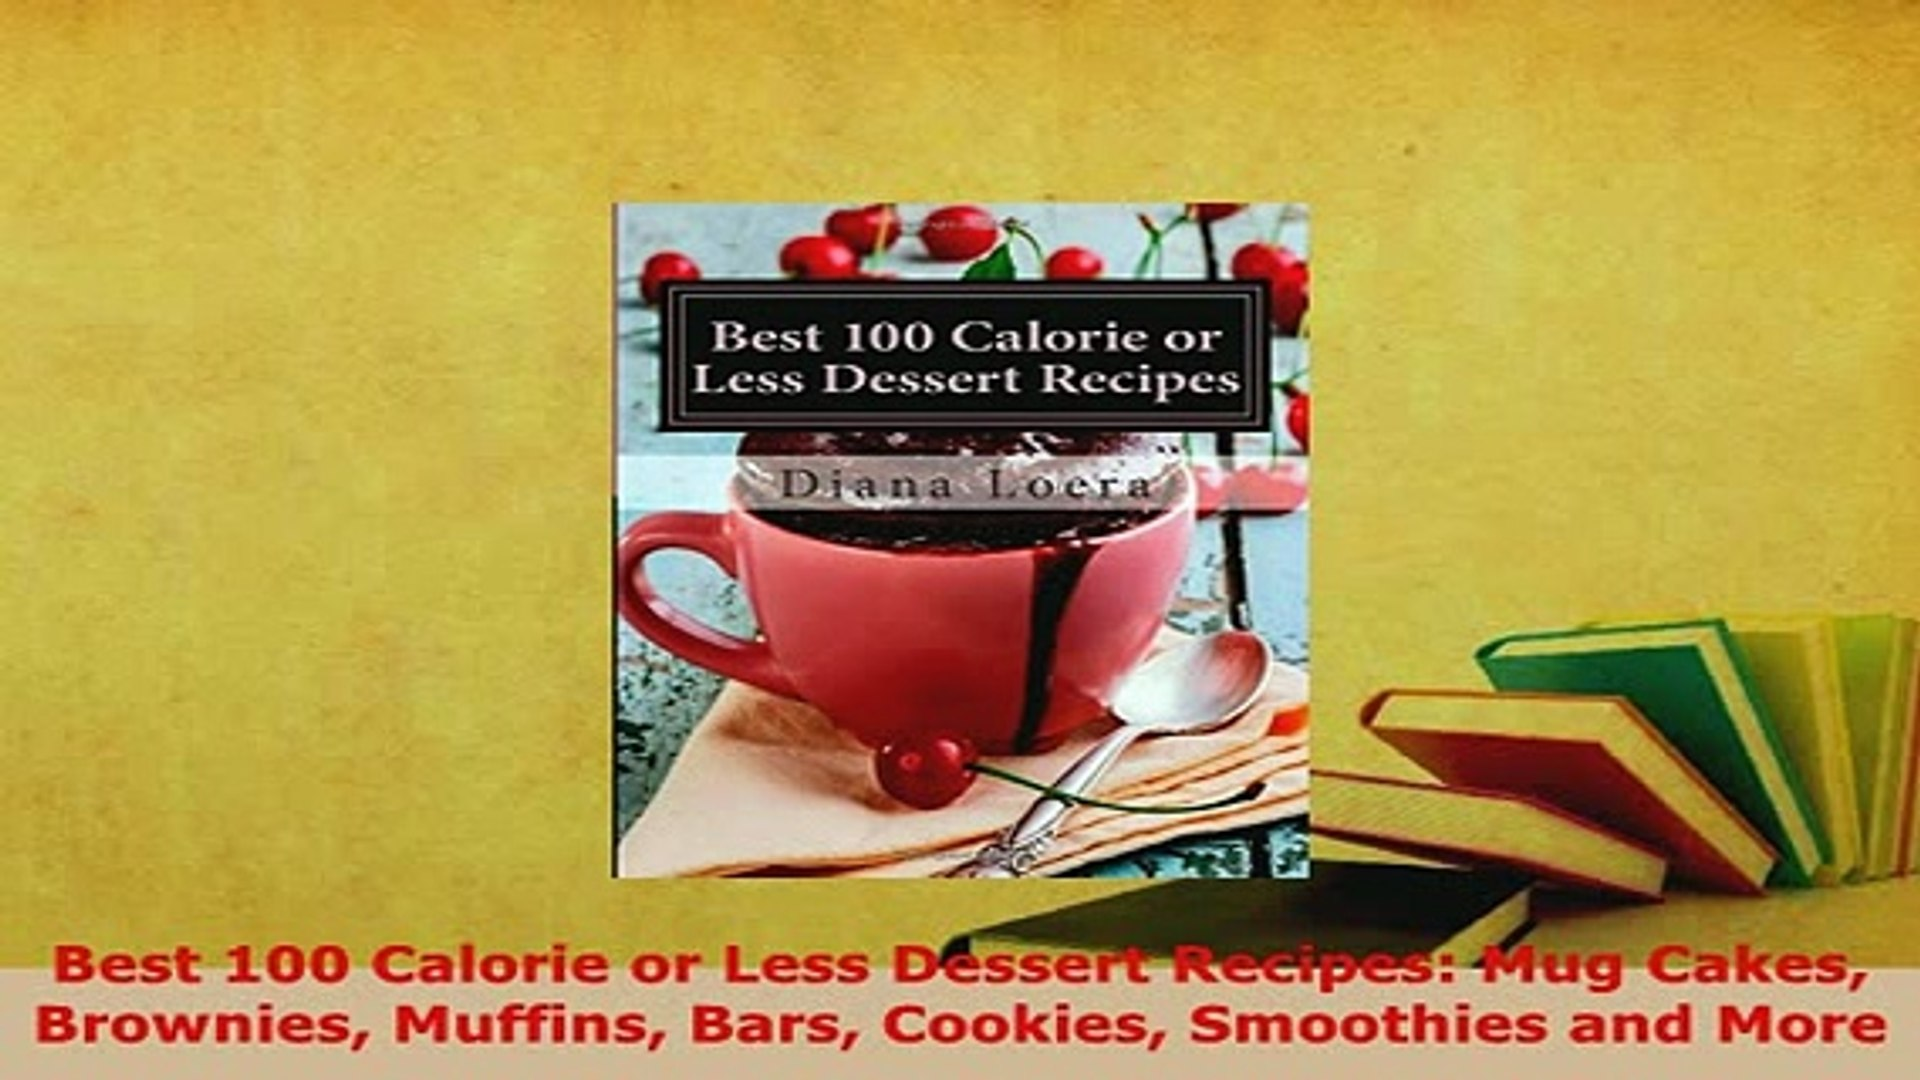 Pdf Best 100 Calorie Or Less Dessert Recipes Mug Cakes Brownies Muffins Bars Cookies Pdf Online Video Dailymotion